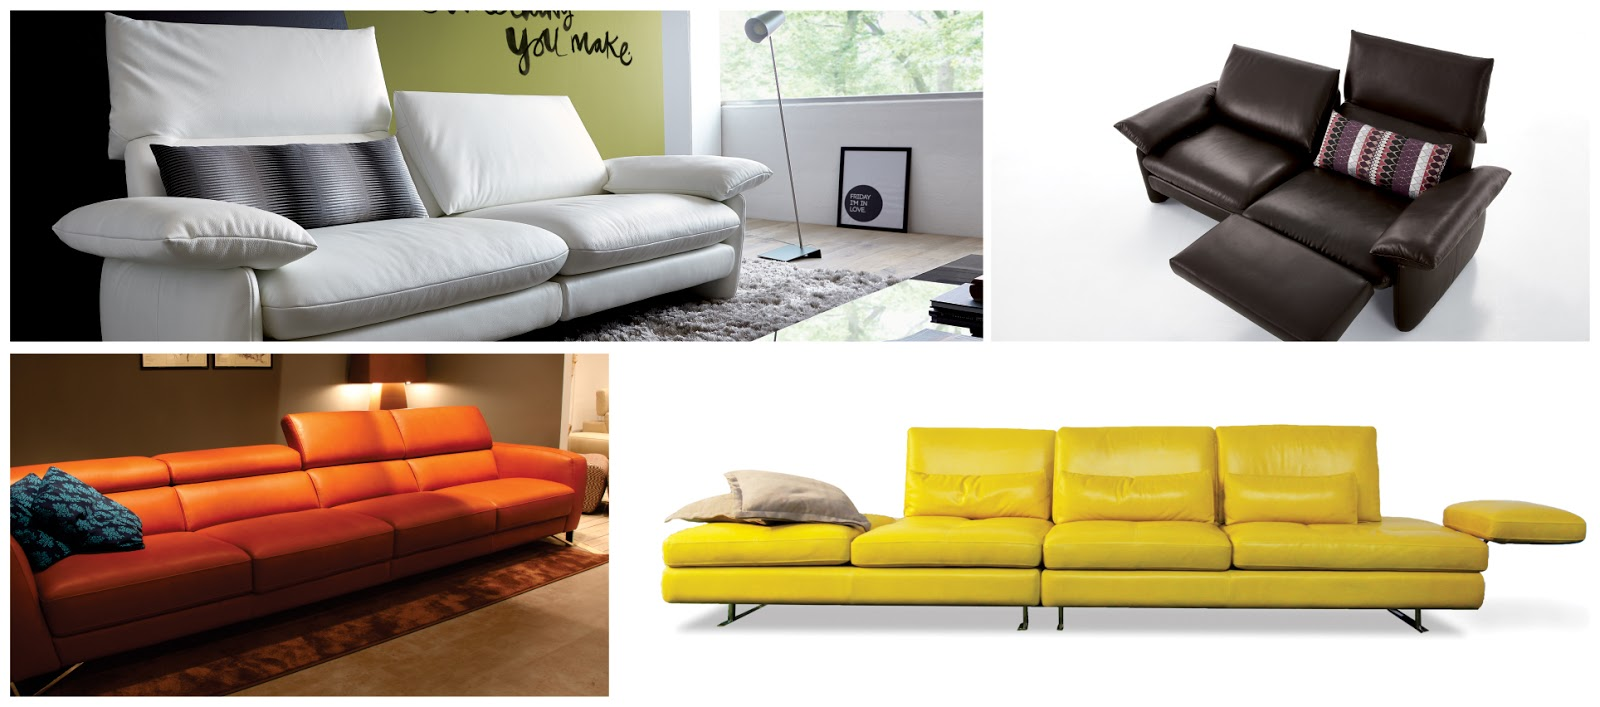 Outstanding Di Milano To India Simply Sofas So Fa So Good Caraccident5 Cool Chair Designs And Ideas Caraccident5Info